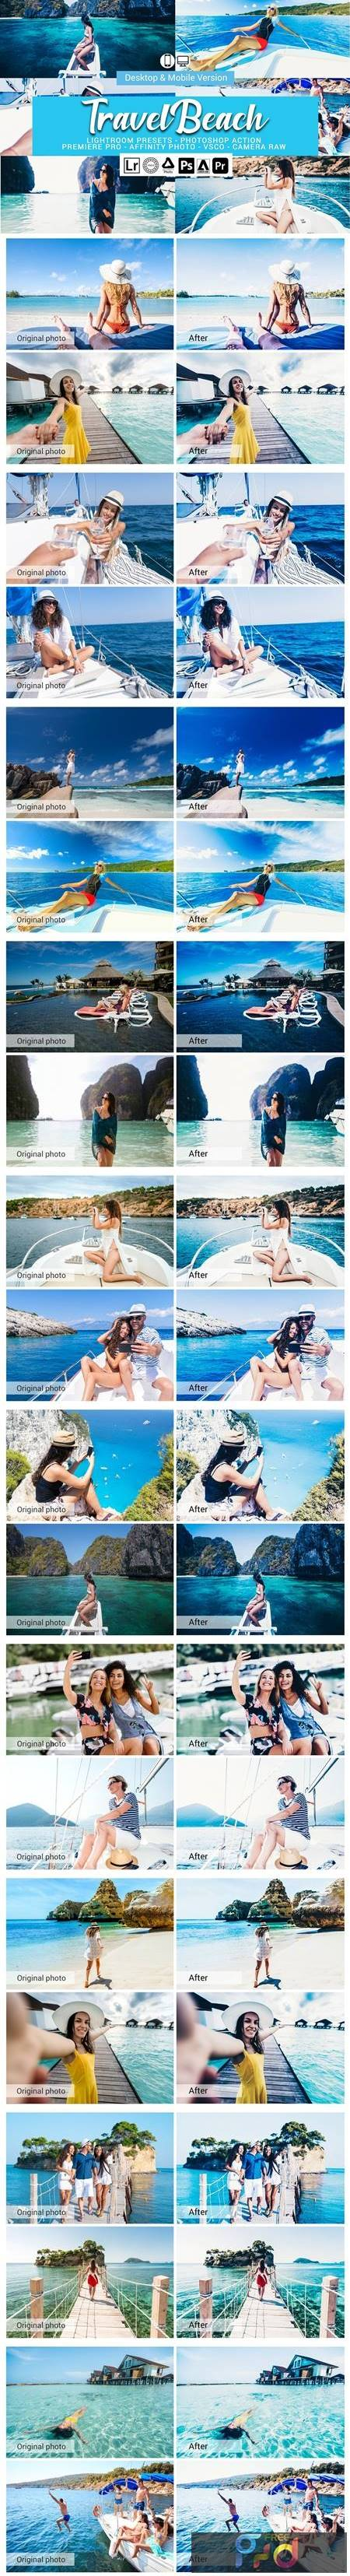 Travel Beach Lightroom Presets 5157497 1